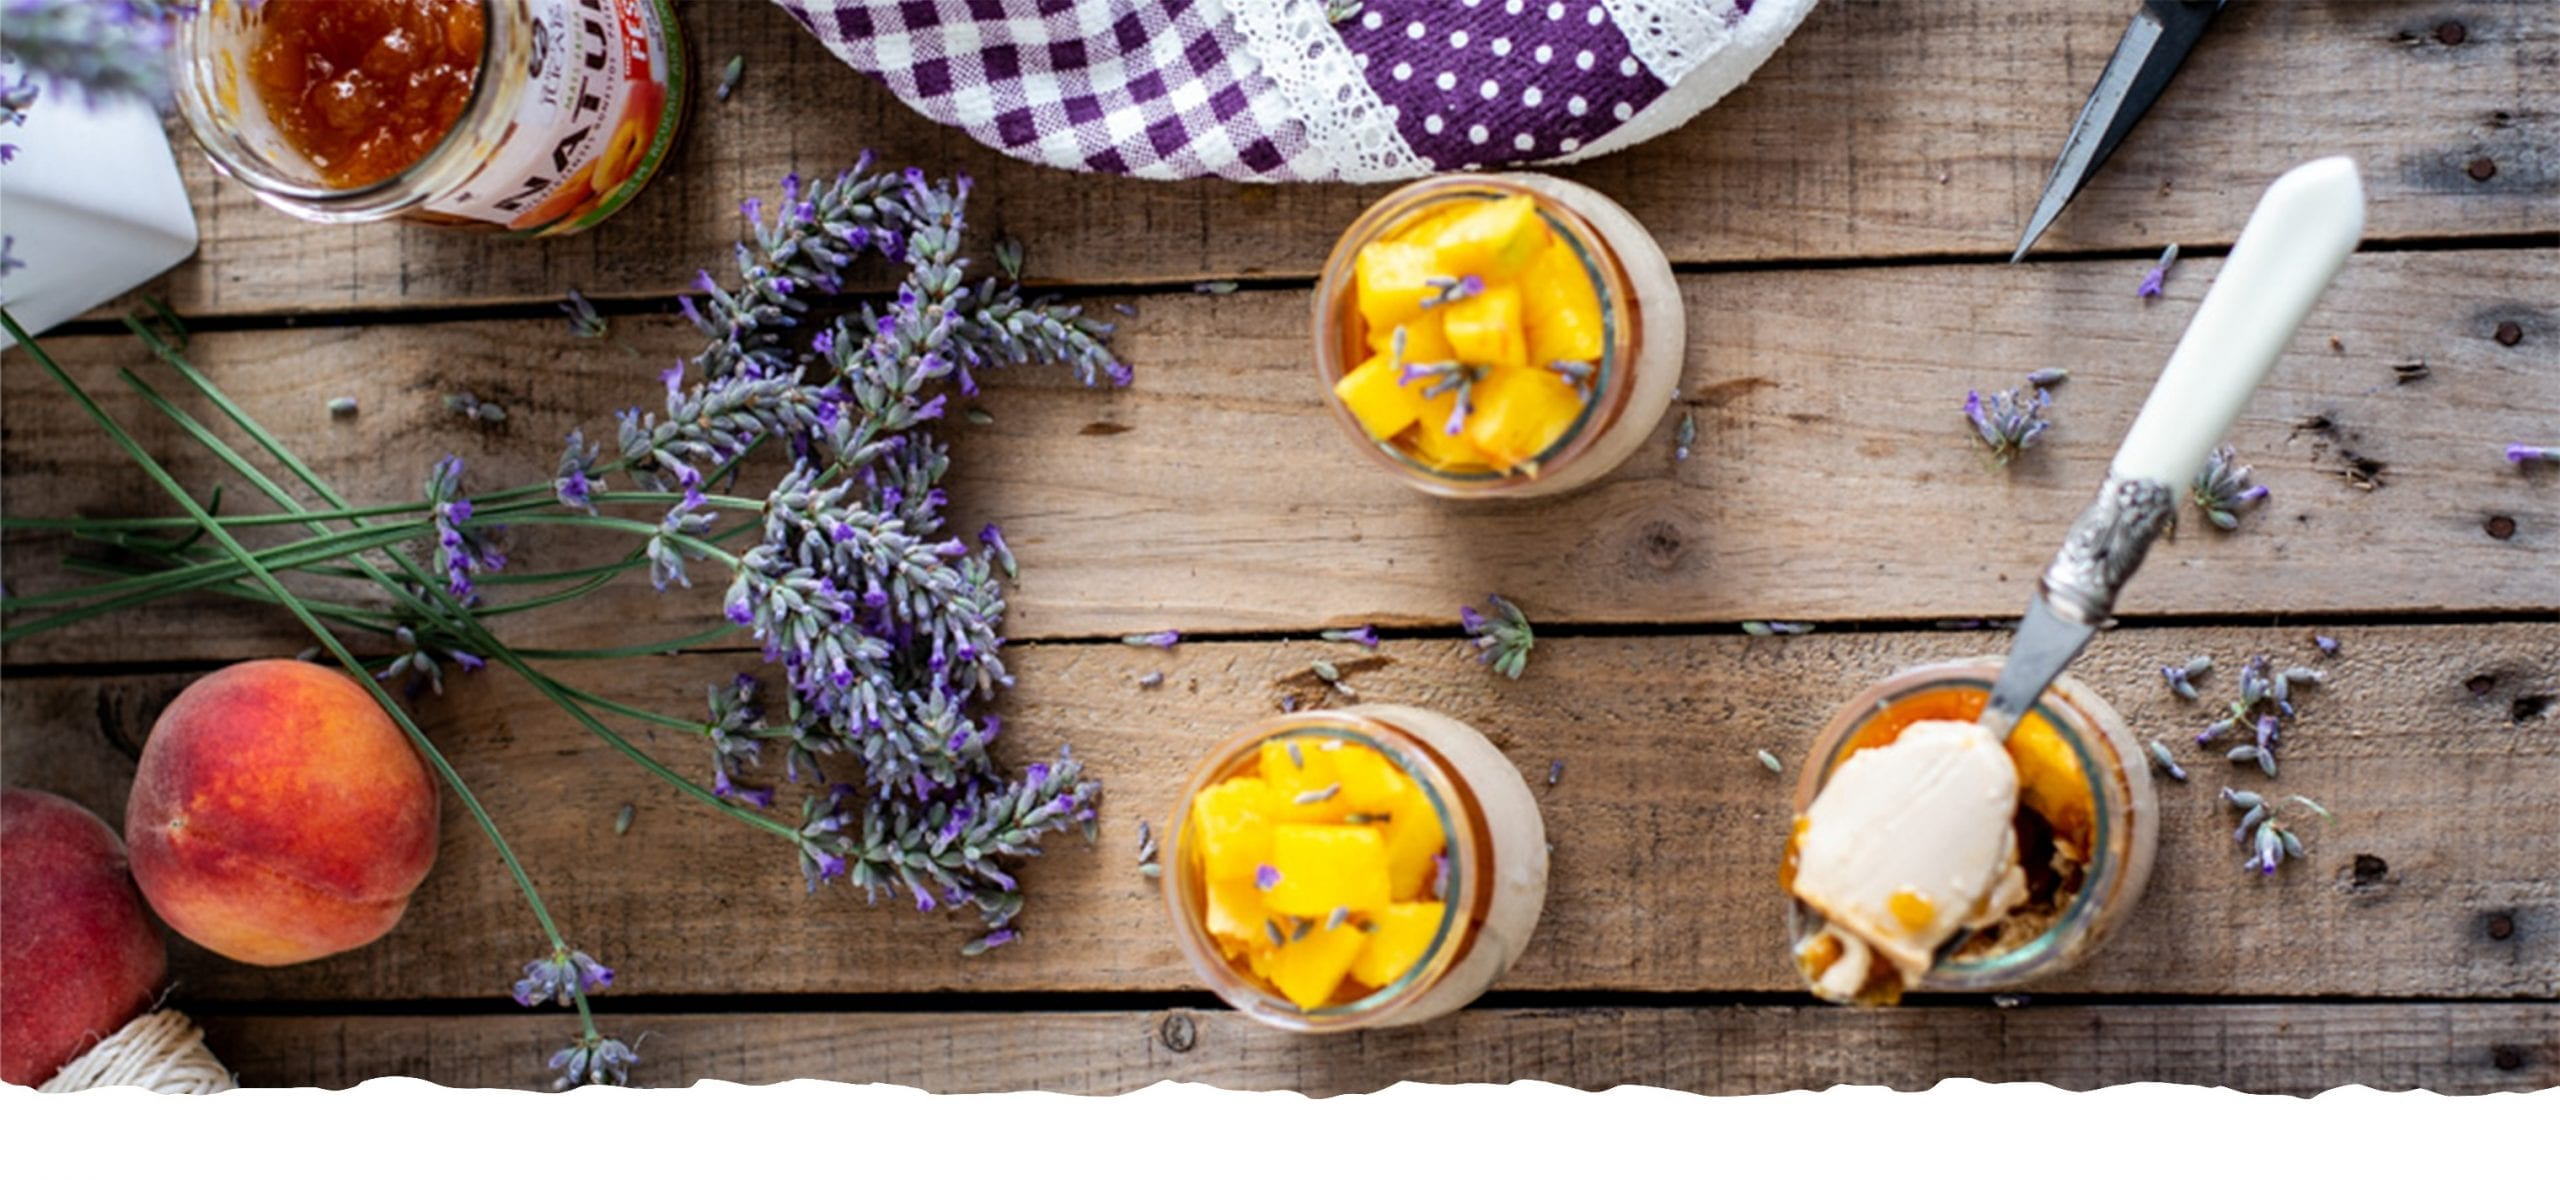 Lavender Panacotta with Peach Jam